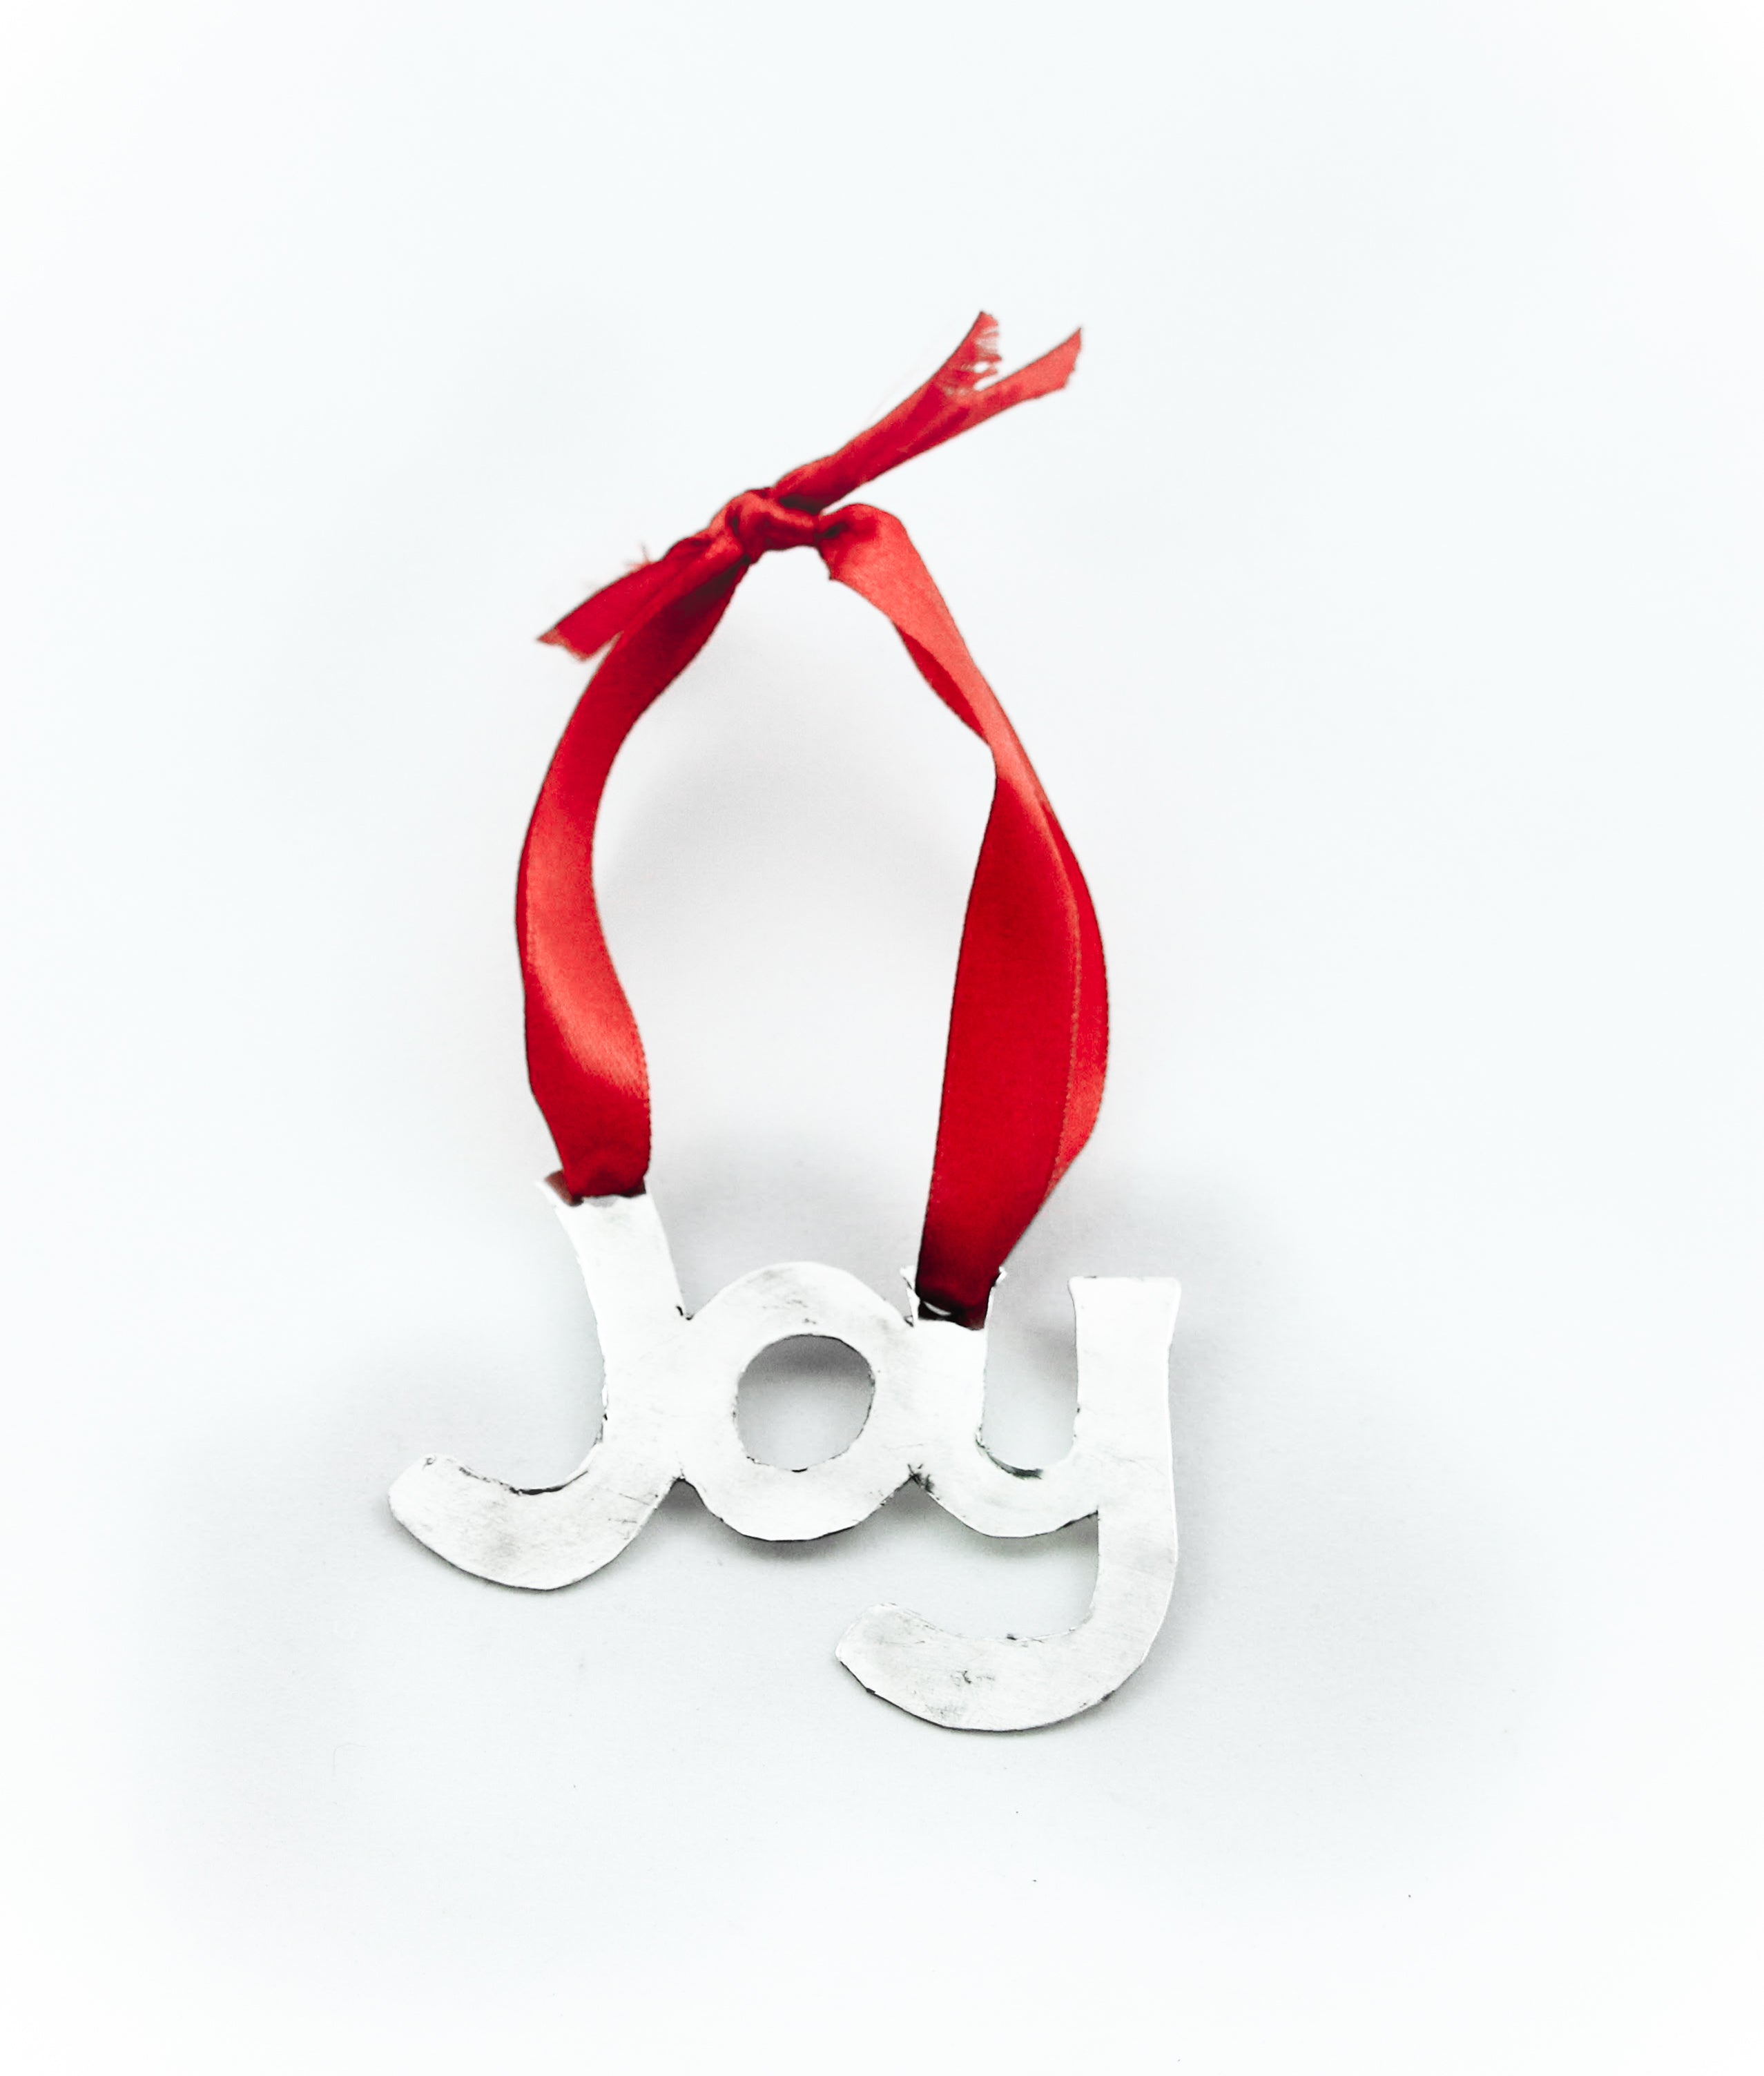 Joy Ornament from Kenya